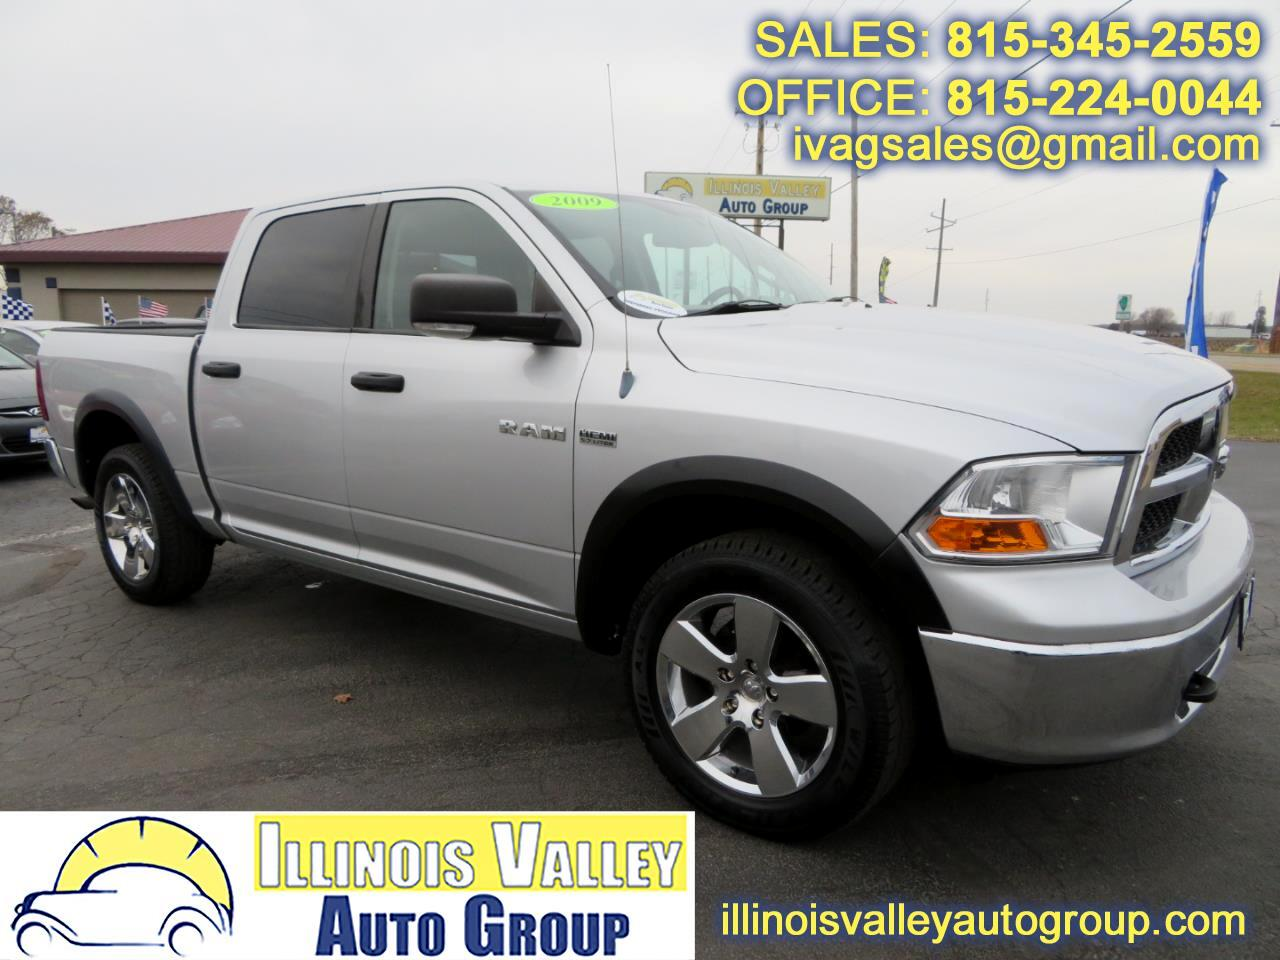 2009 Dodge Ram 1500 SLT Crew Cab Short Bed 4WD